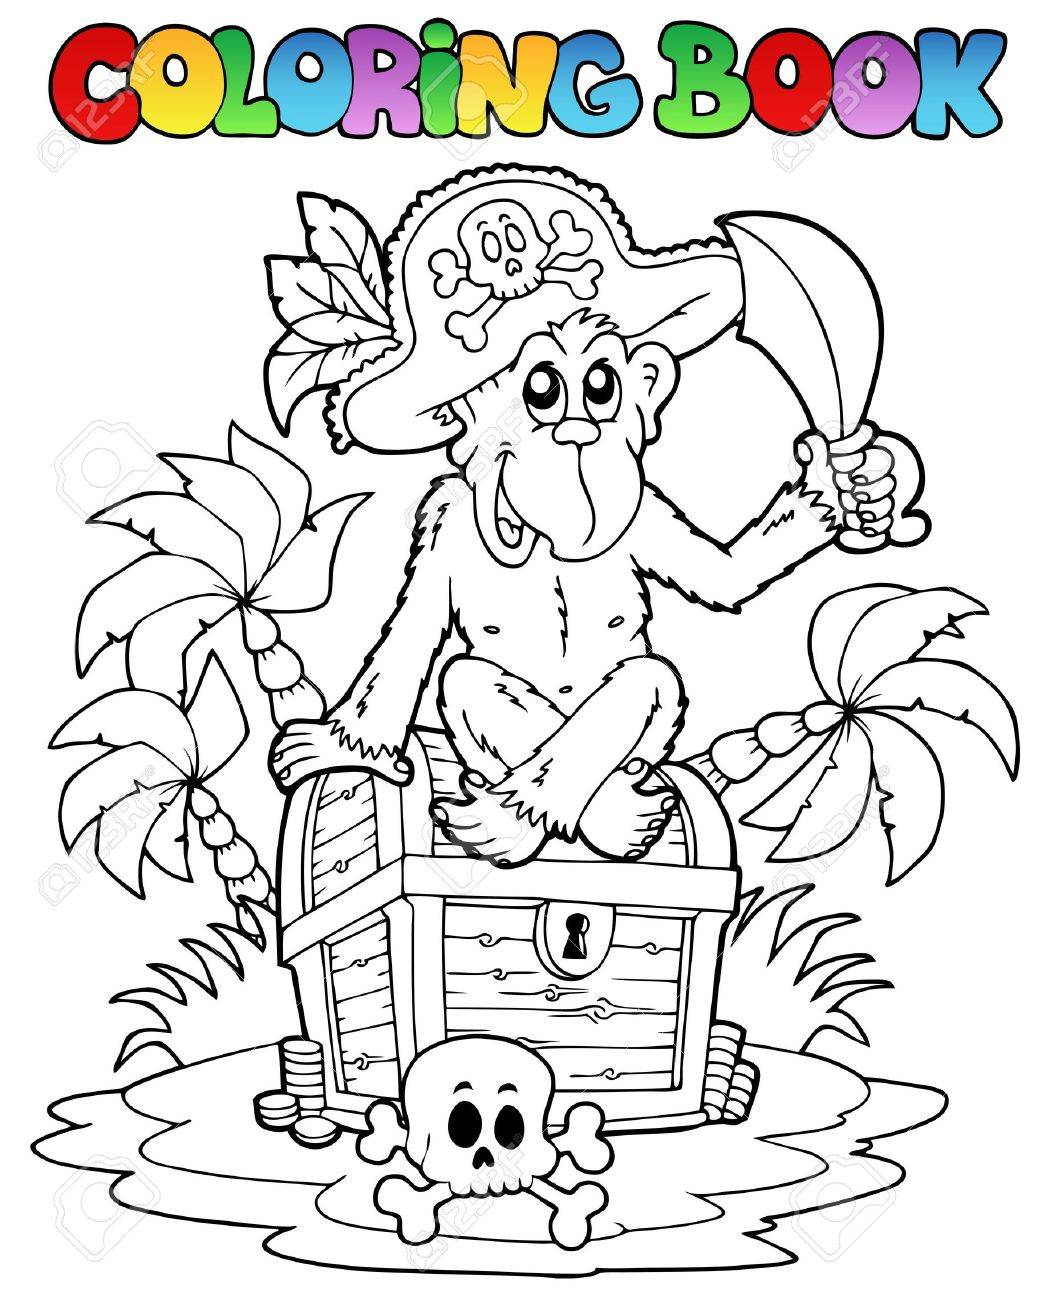 The coloring book clean - Coloring Book With Pirate Theme 3 Vector Illustration Royalty